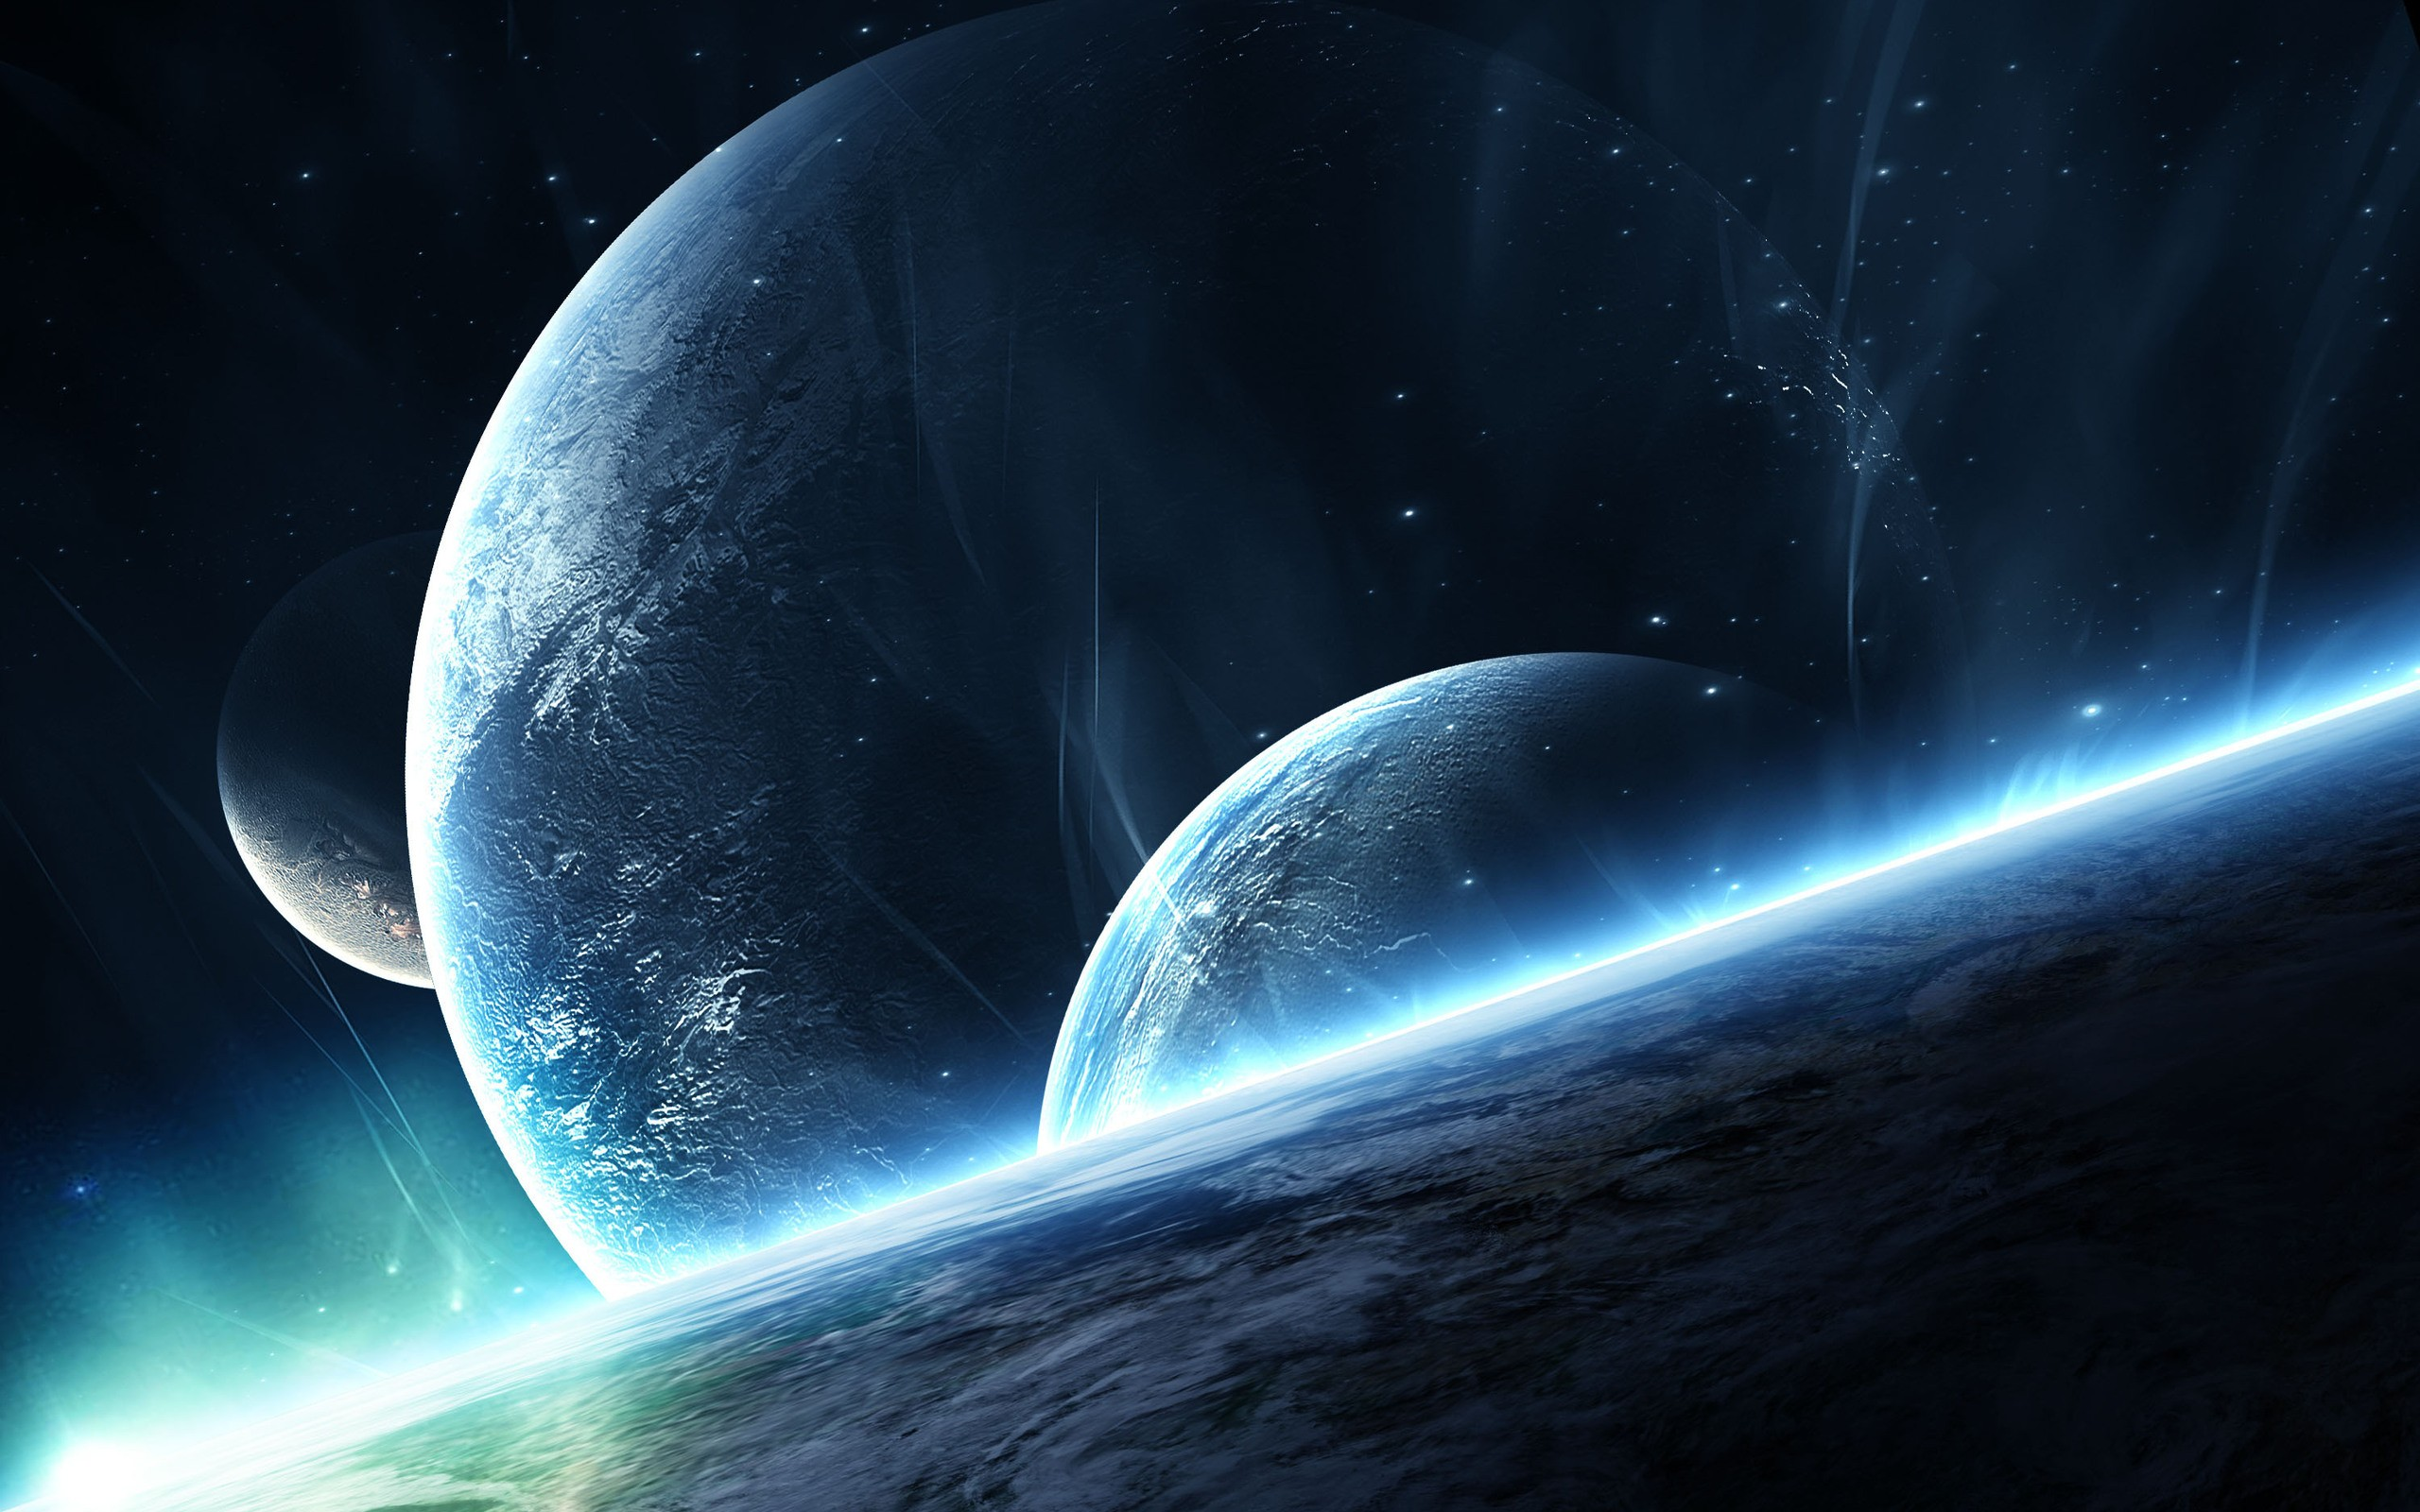 49 Hd Outer Space Wallpapers On Wallpapersafari